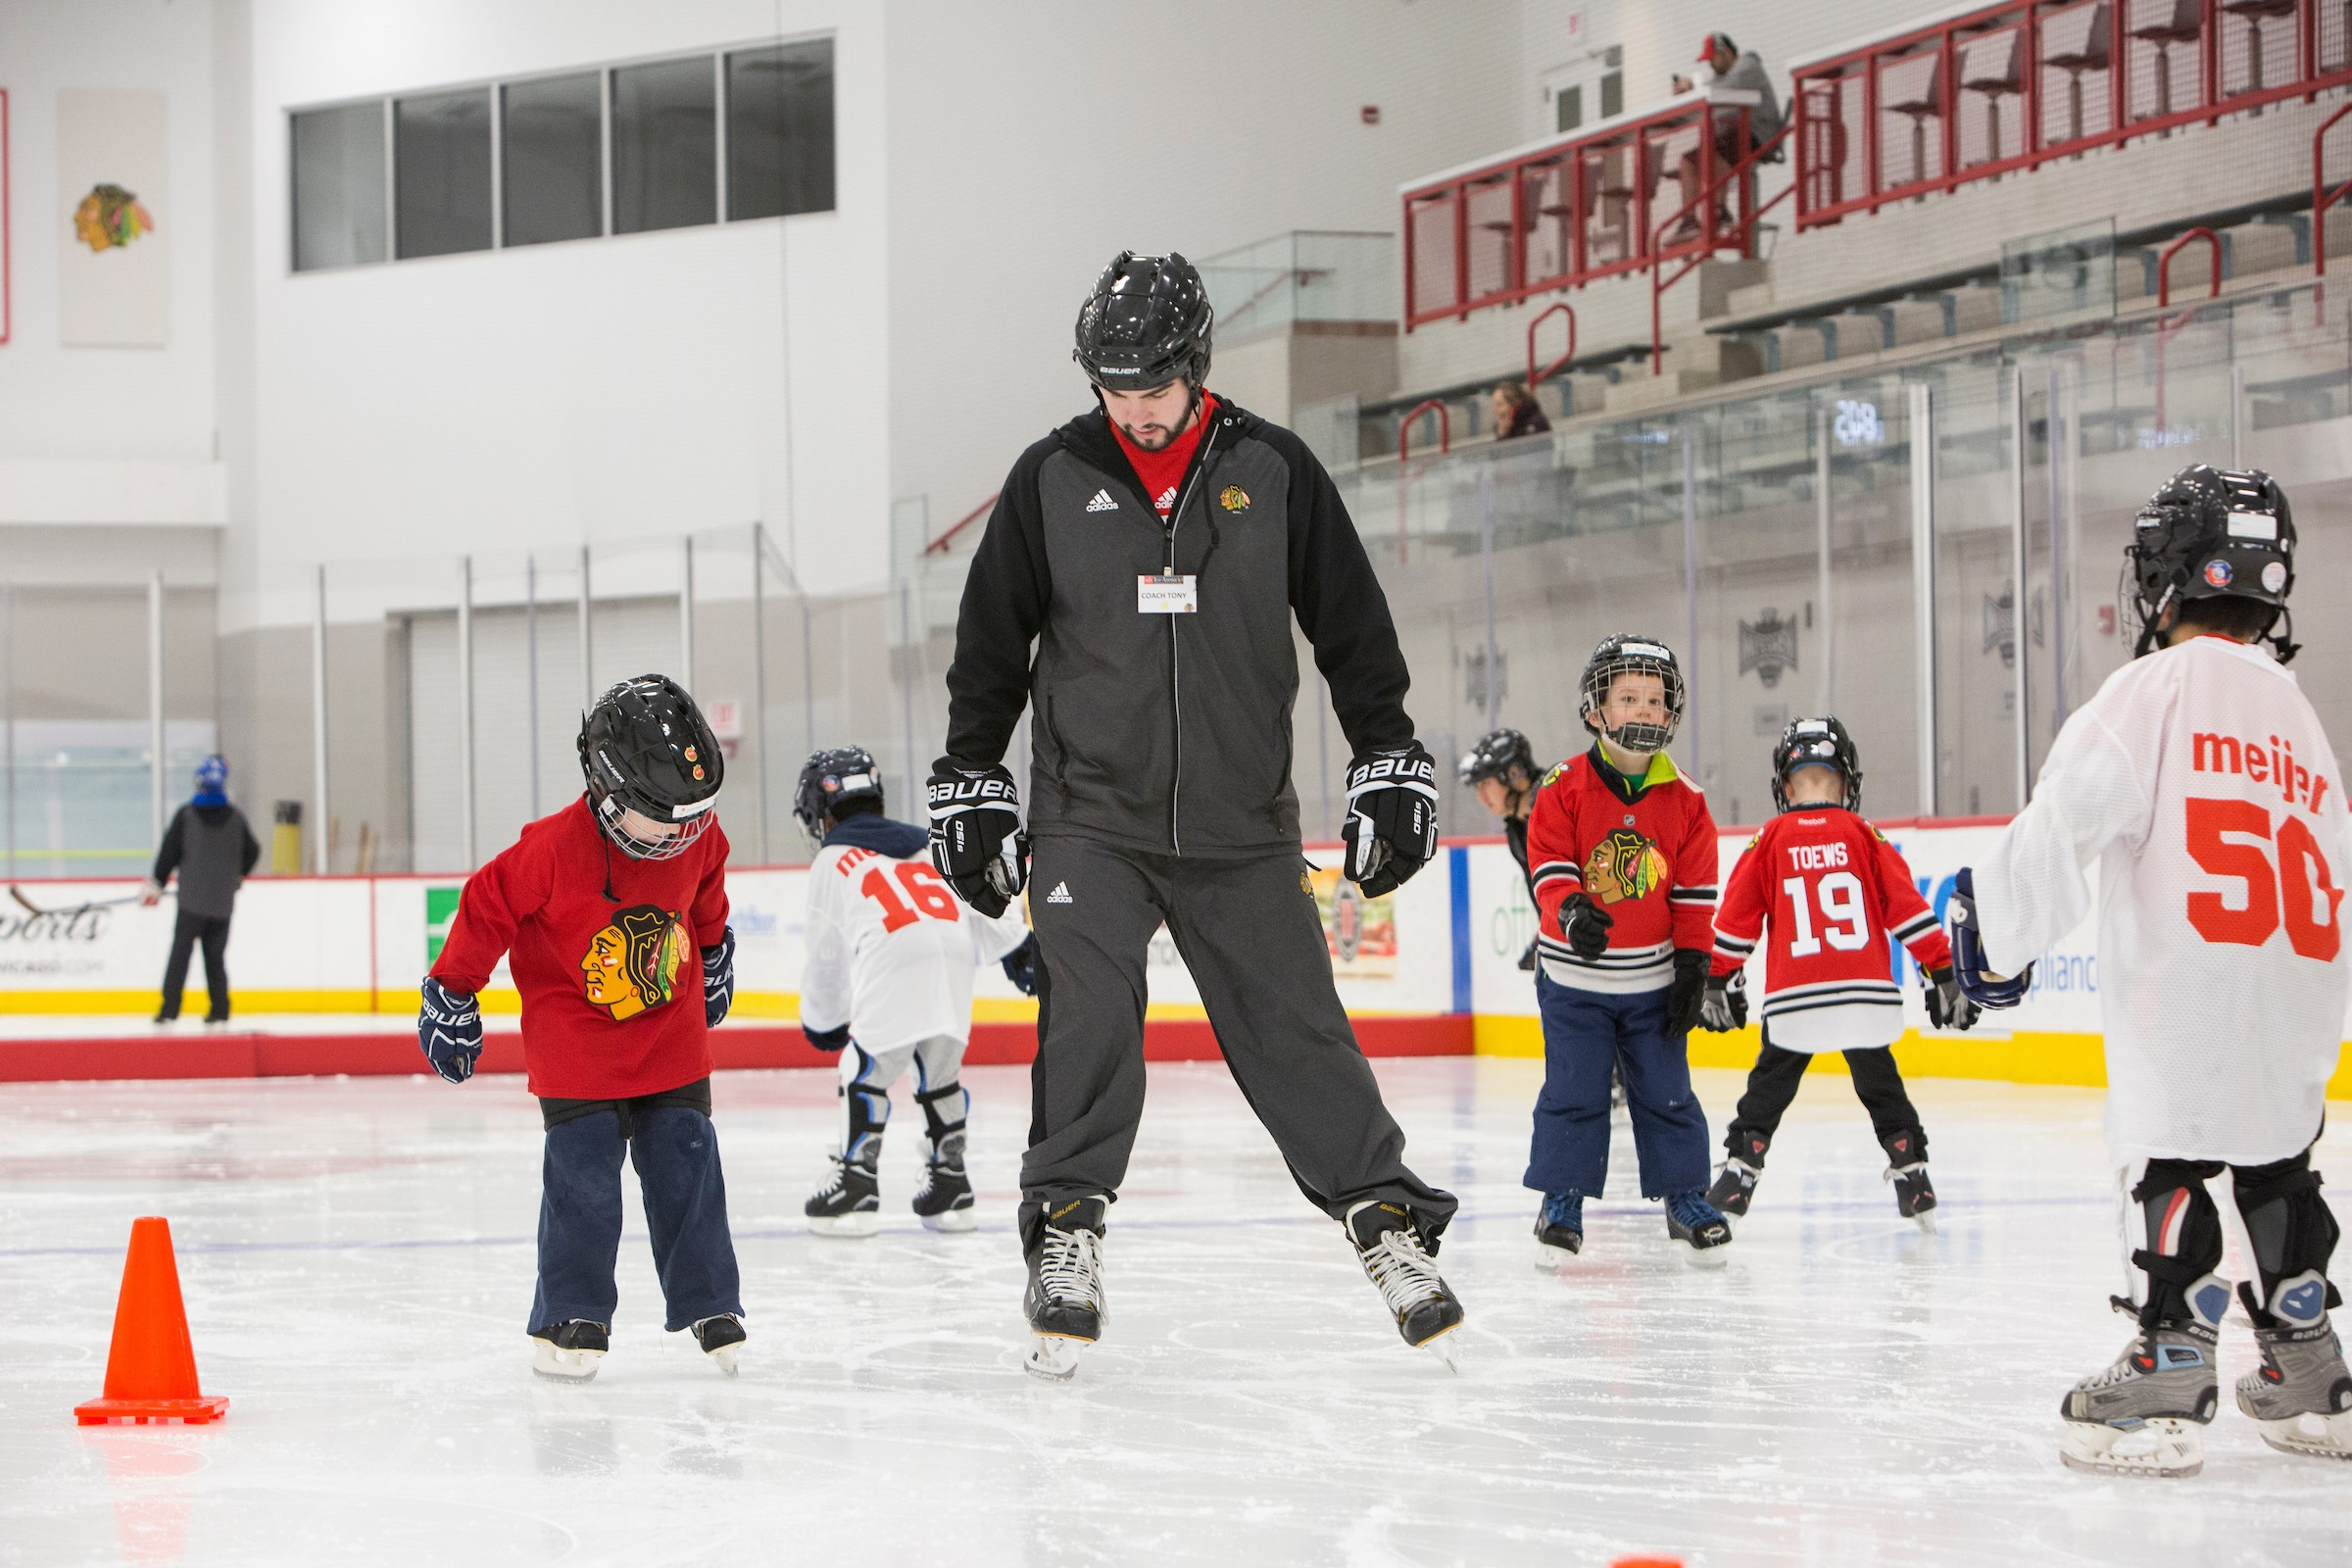 Youth Hockey coach